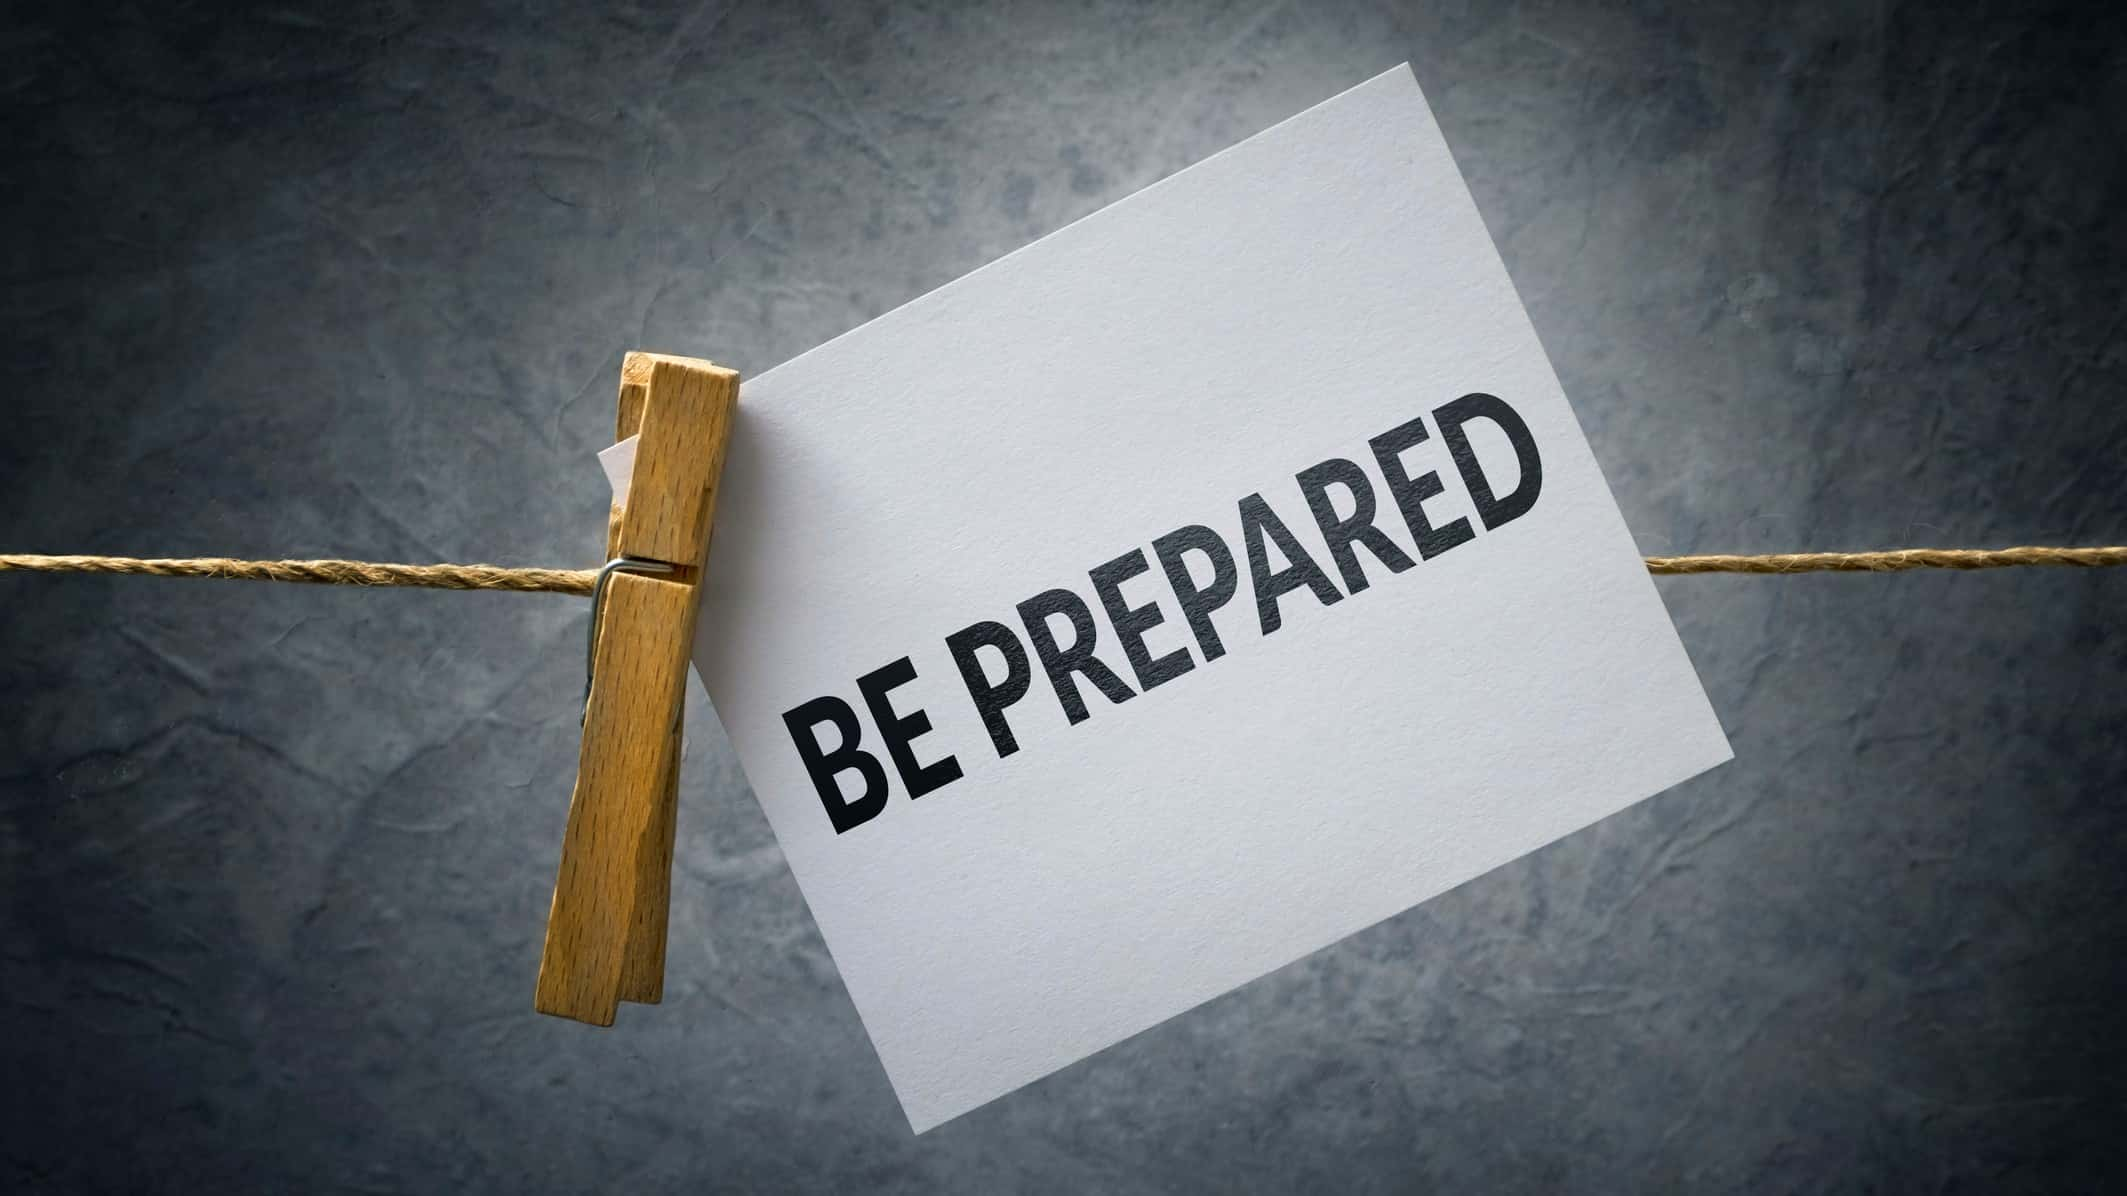 preparing for changing asx share prices represented by 'be prepared' note pegged to a line